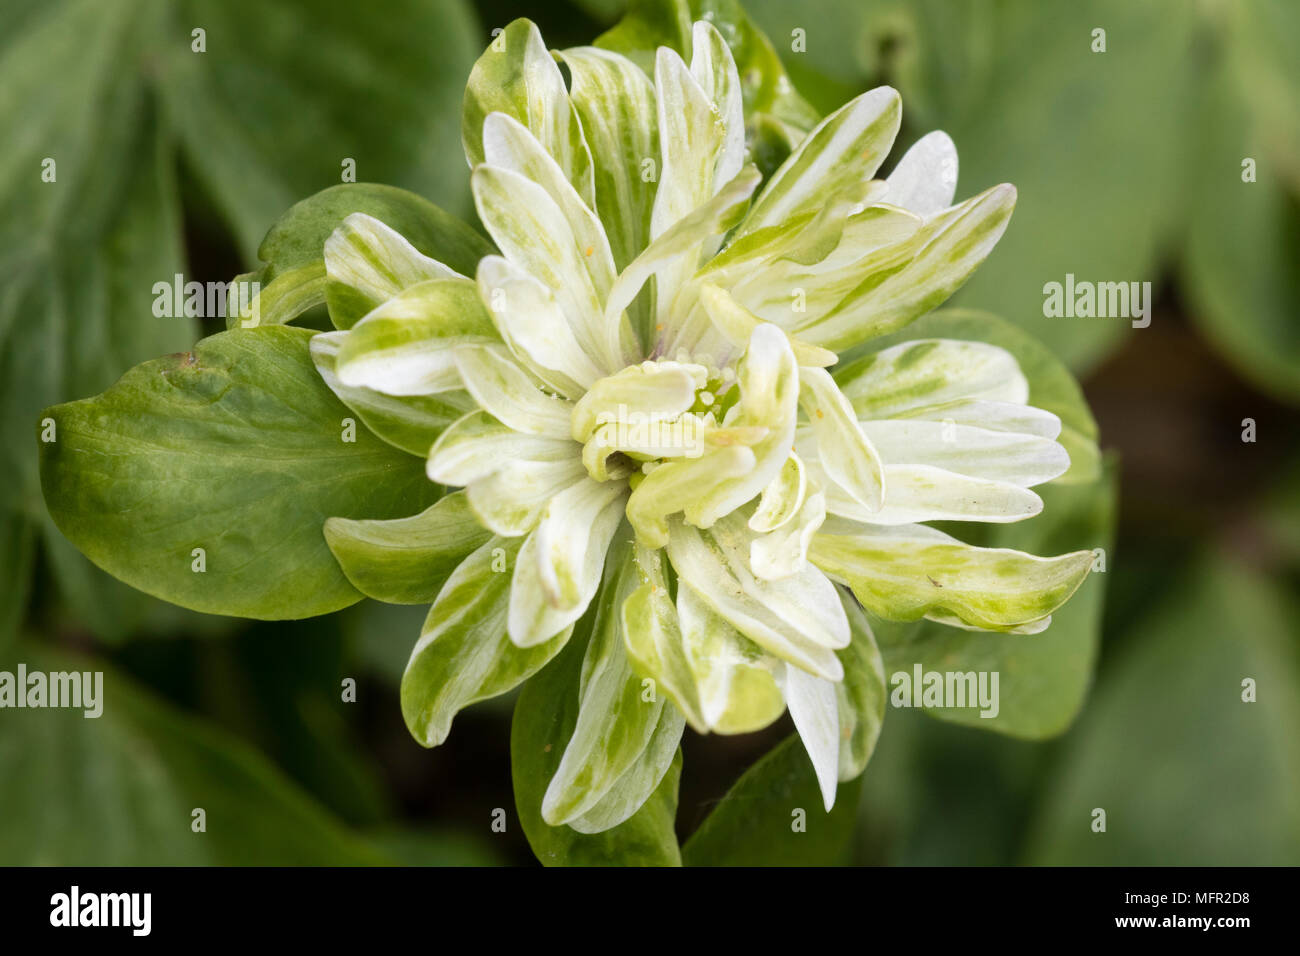 Double White And Green Flower Of The Unusual Variety Of The Spring